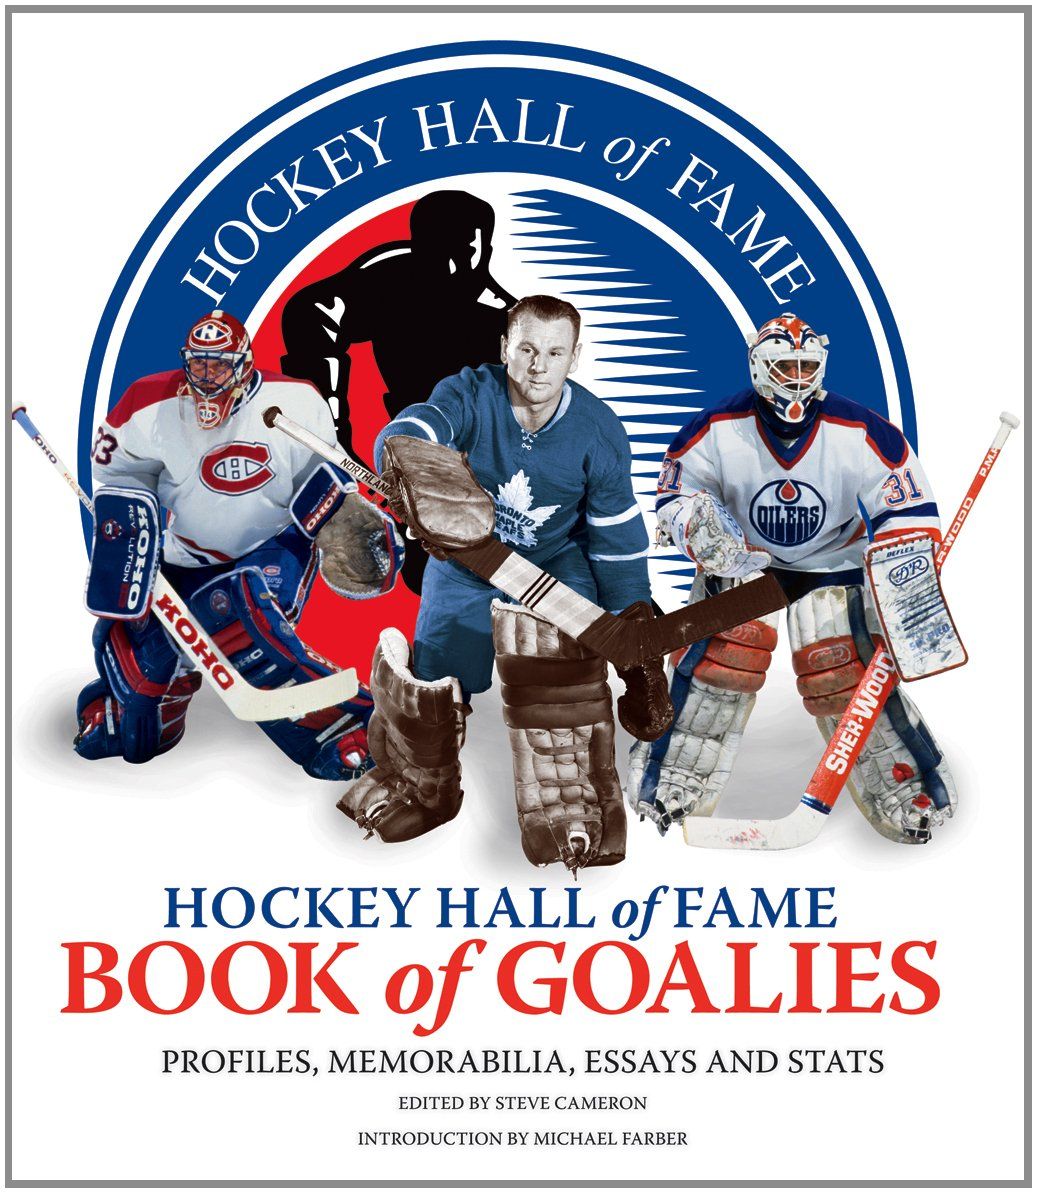 Essay About Health Amazoncom Hockey Hall Of Fame Book Of Goalies Profiles Memorabilia  Essays And Stats  Steve Cameron Michael Farber Books Argumentative Essay Topics On Health also Sample Essay Topics For High School Amazoncom Hockey Hall Of Fame Book Of Goalies Profiles  Business Ethics Essays